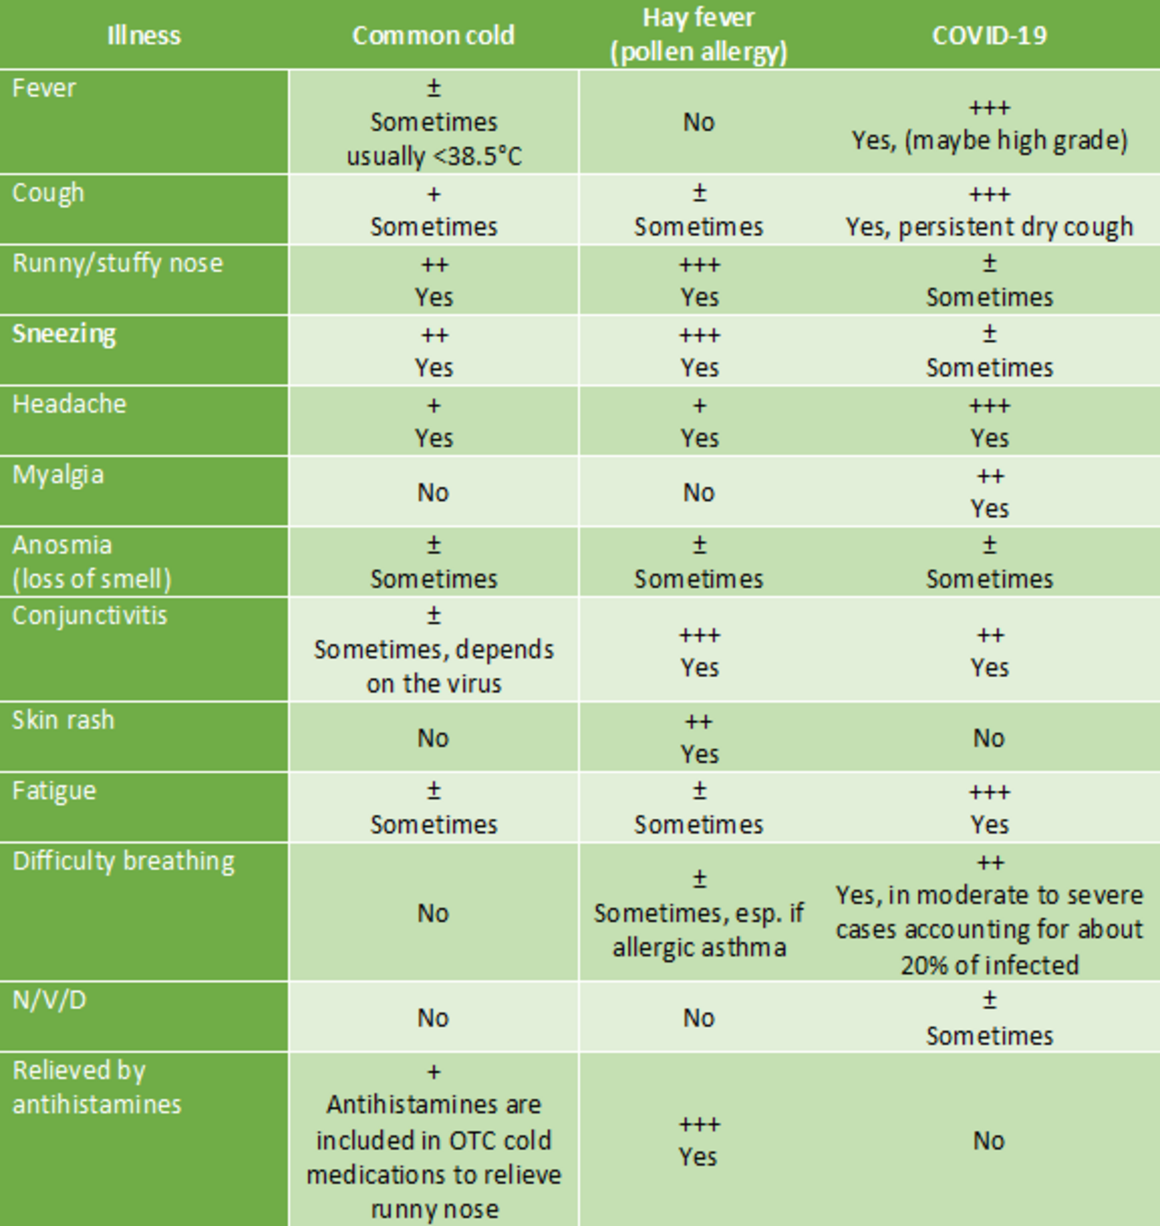 Table: comparison of common symptoms between common cold, hay fever and COVID-19